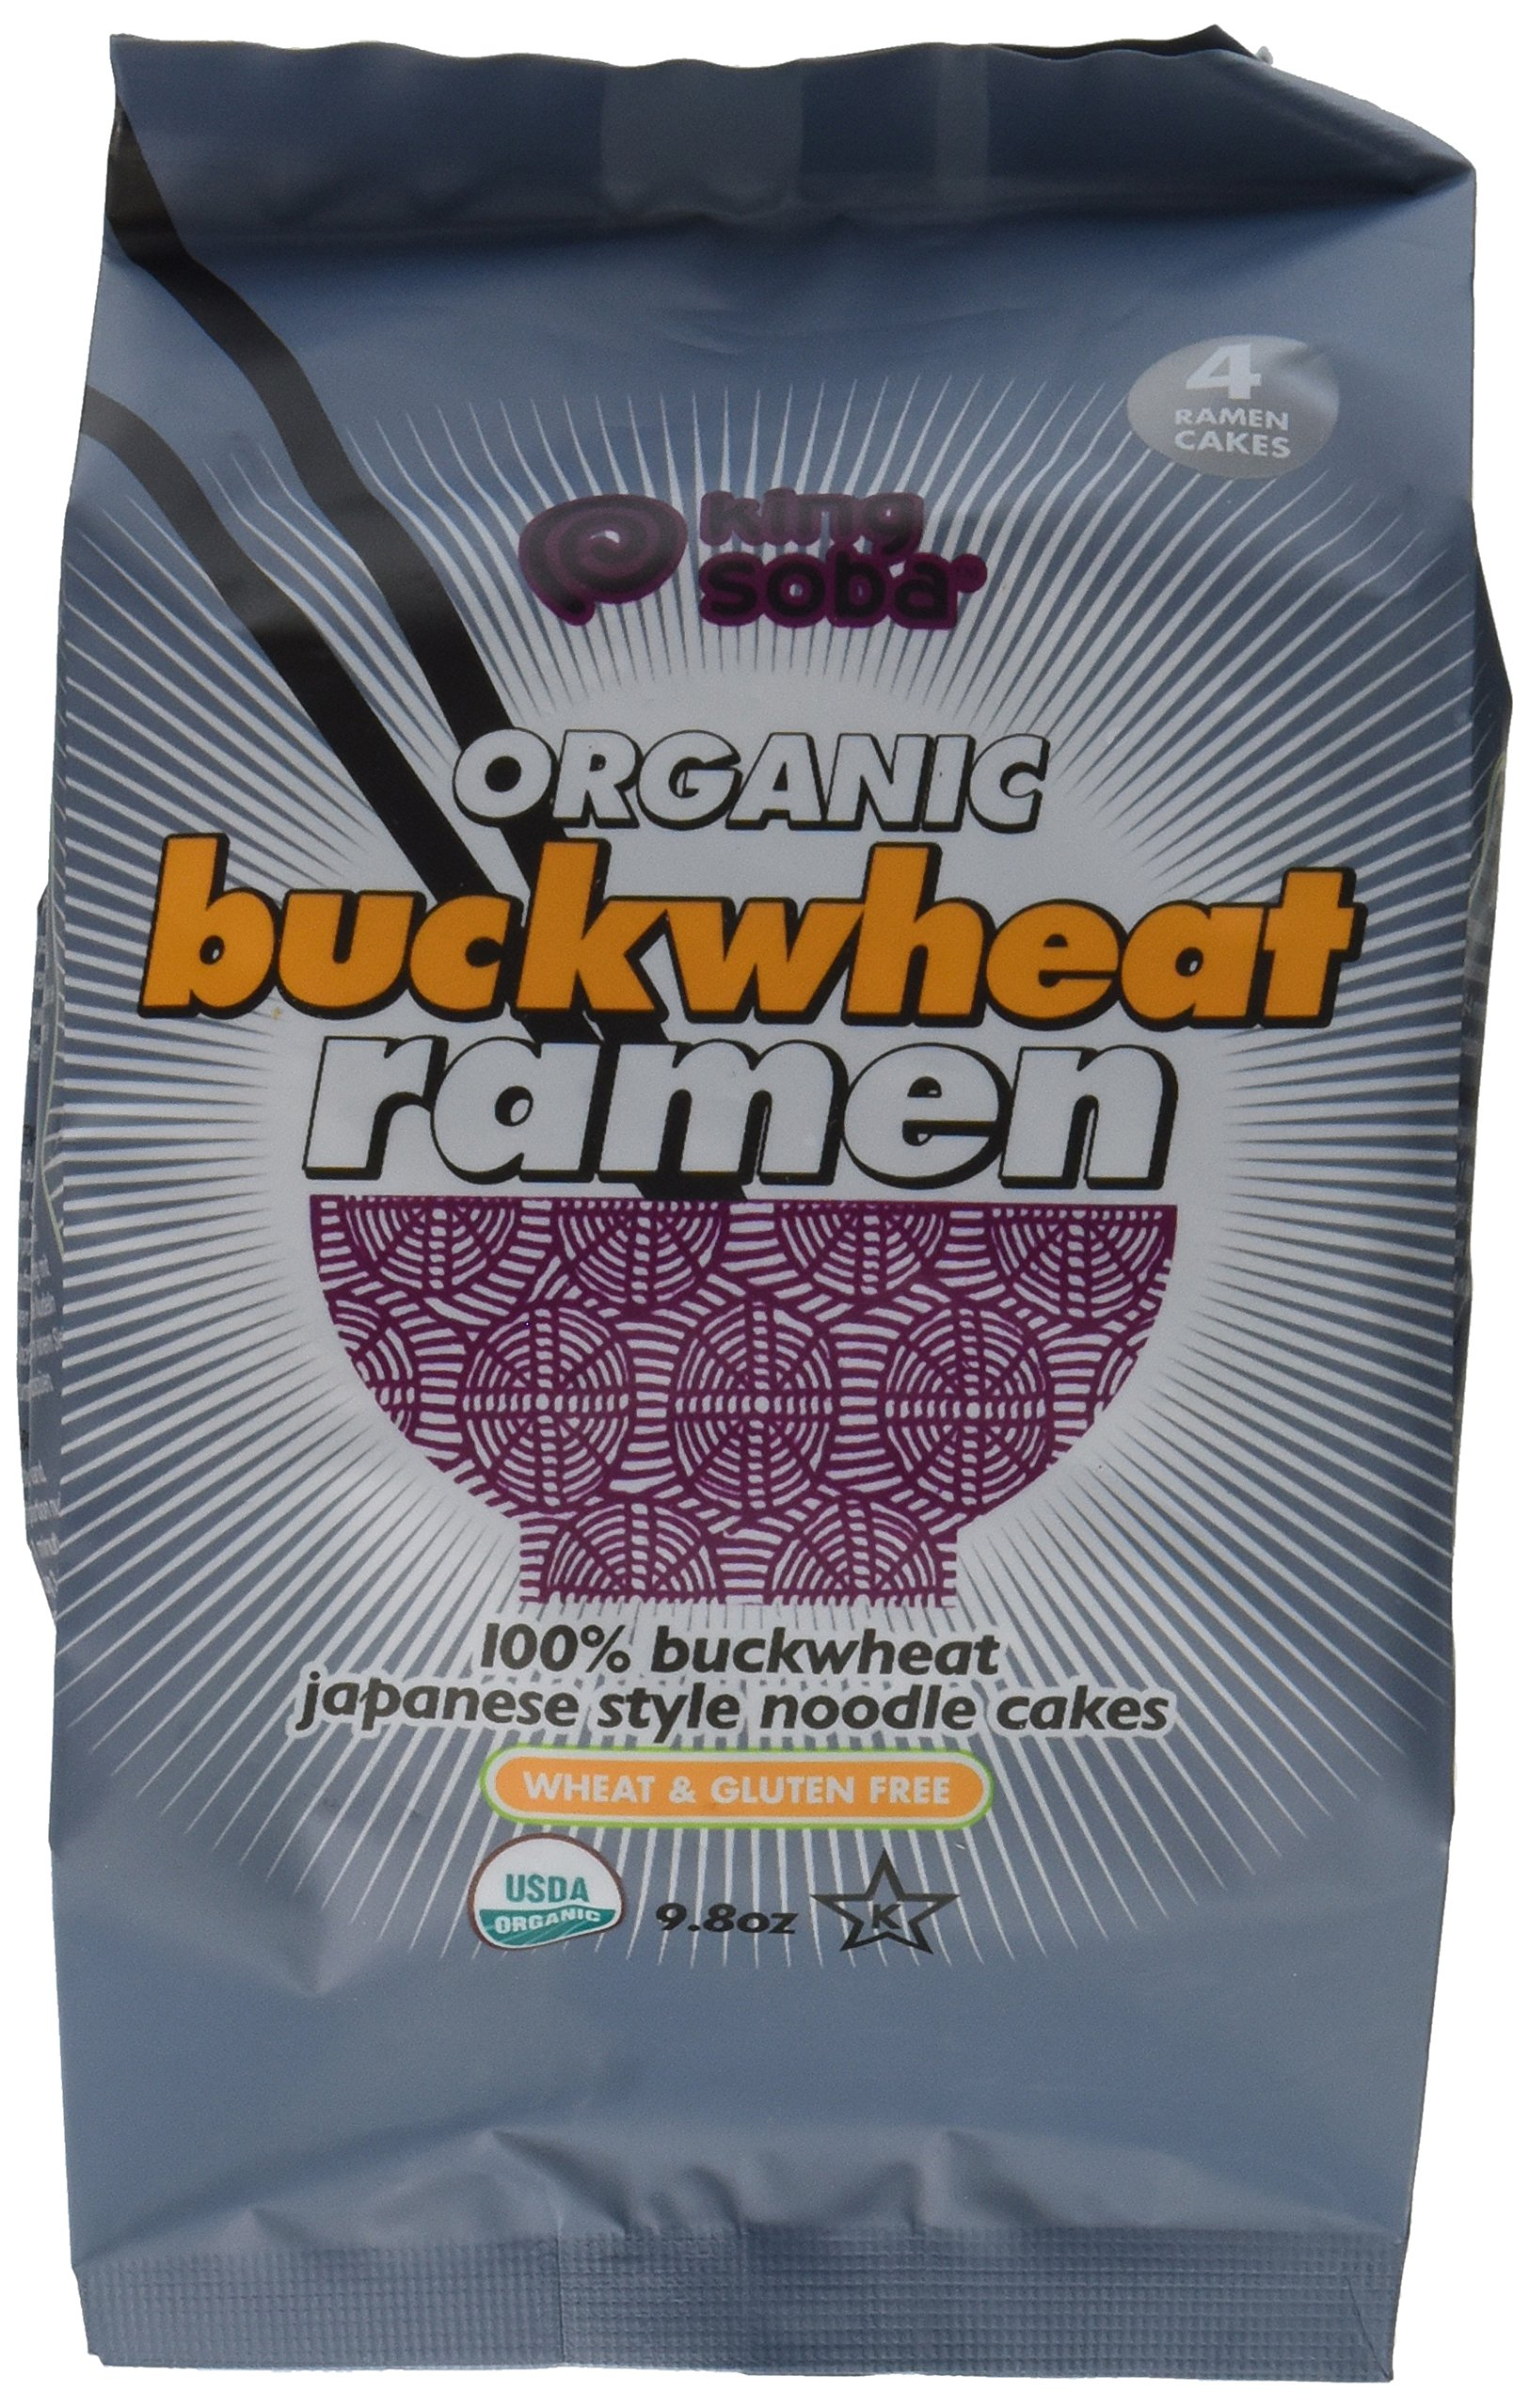 King Soba 3-PACK Gluten Free, Organic Buckwheat Ramen Noodles - 4 noodle cakes in each package